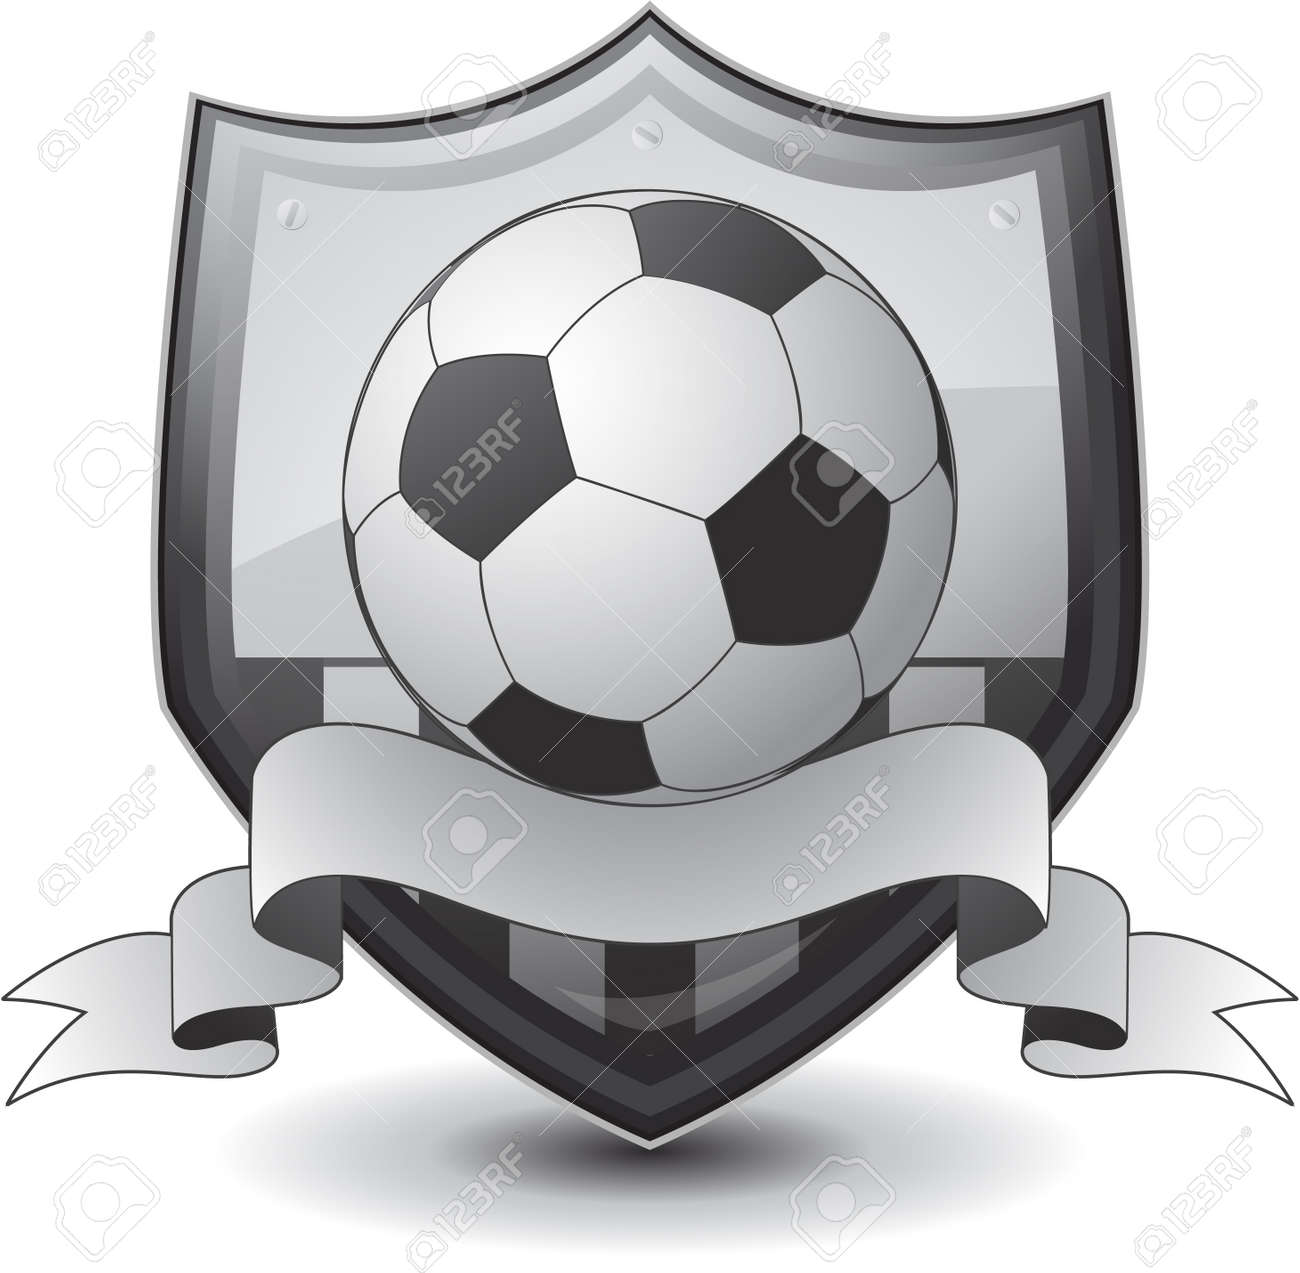 shield soccer emblem Stock Vector - 8683380